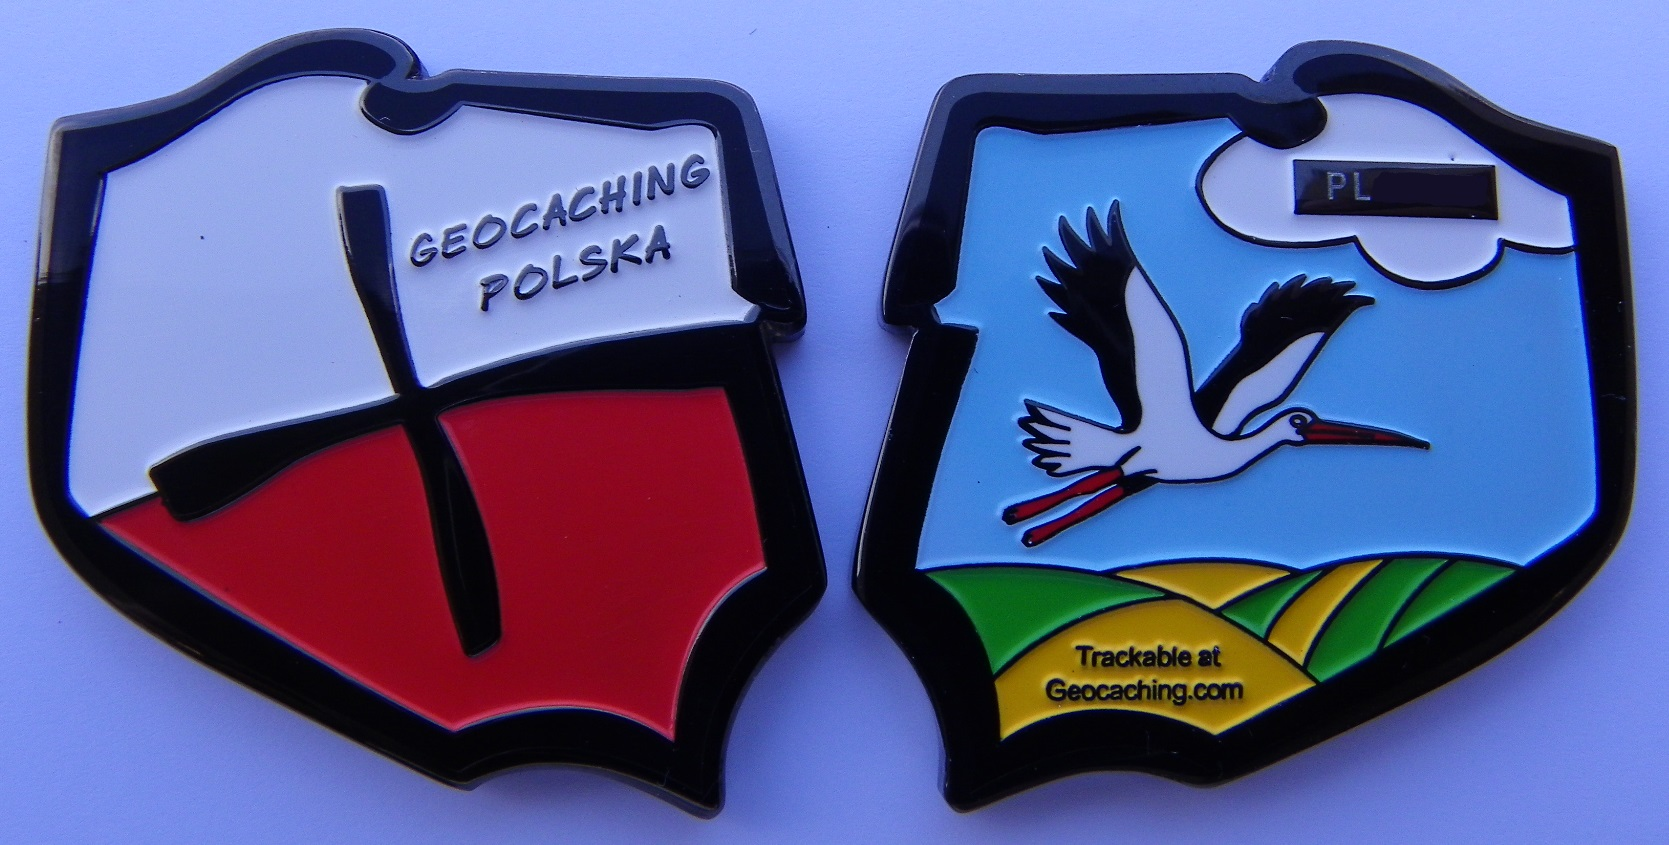 www.abditus.eu_Geocaching_Polska_Geocoin_White_Stork_2014_Black_nickel.jpg